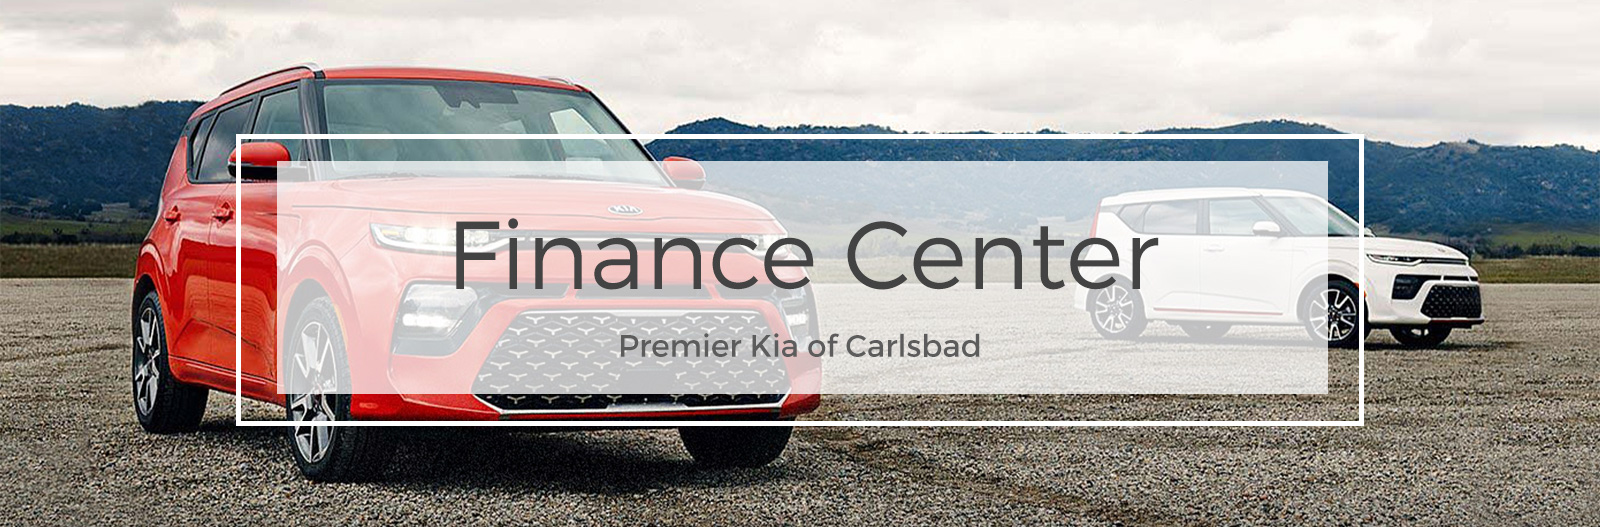 Contact Premier Kia of Carlsbad Finance Center